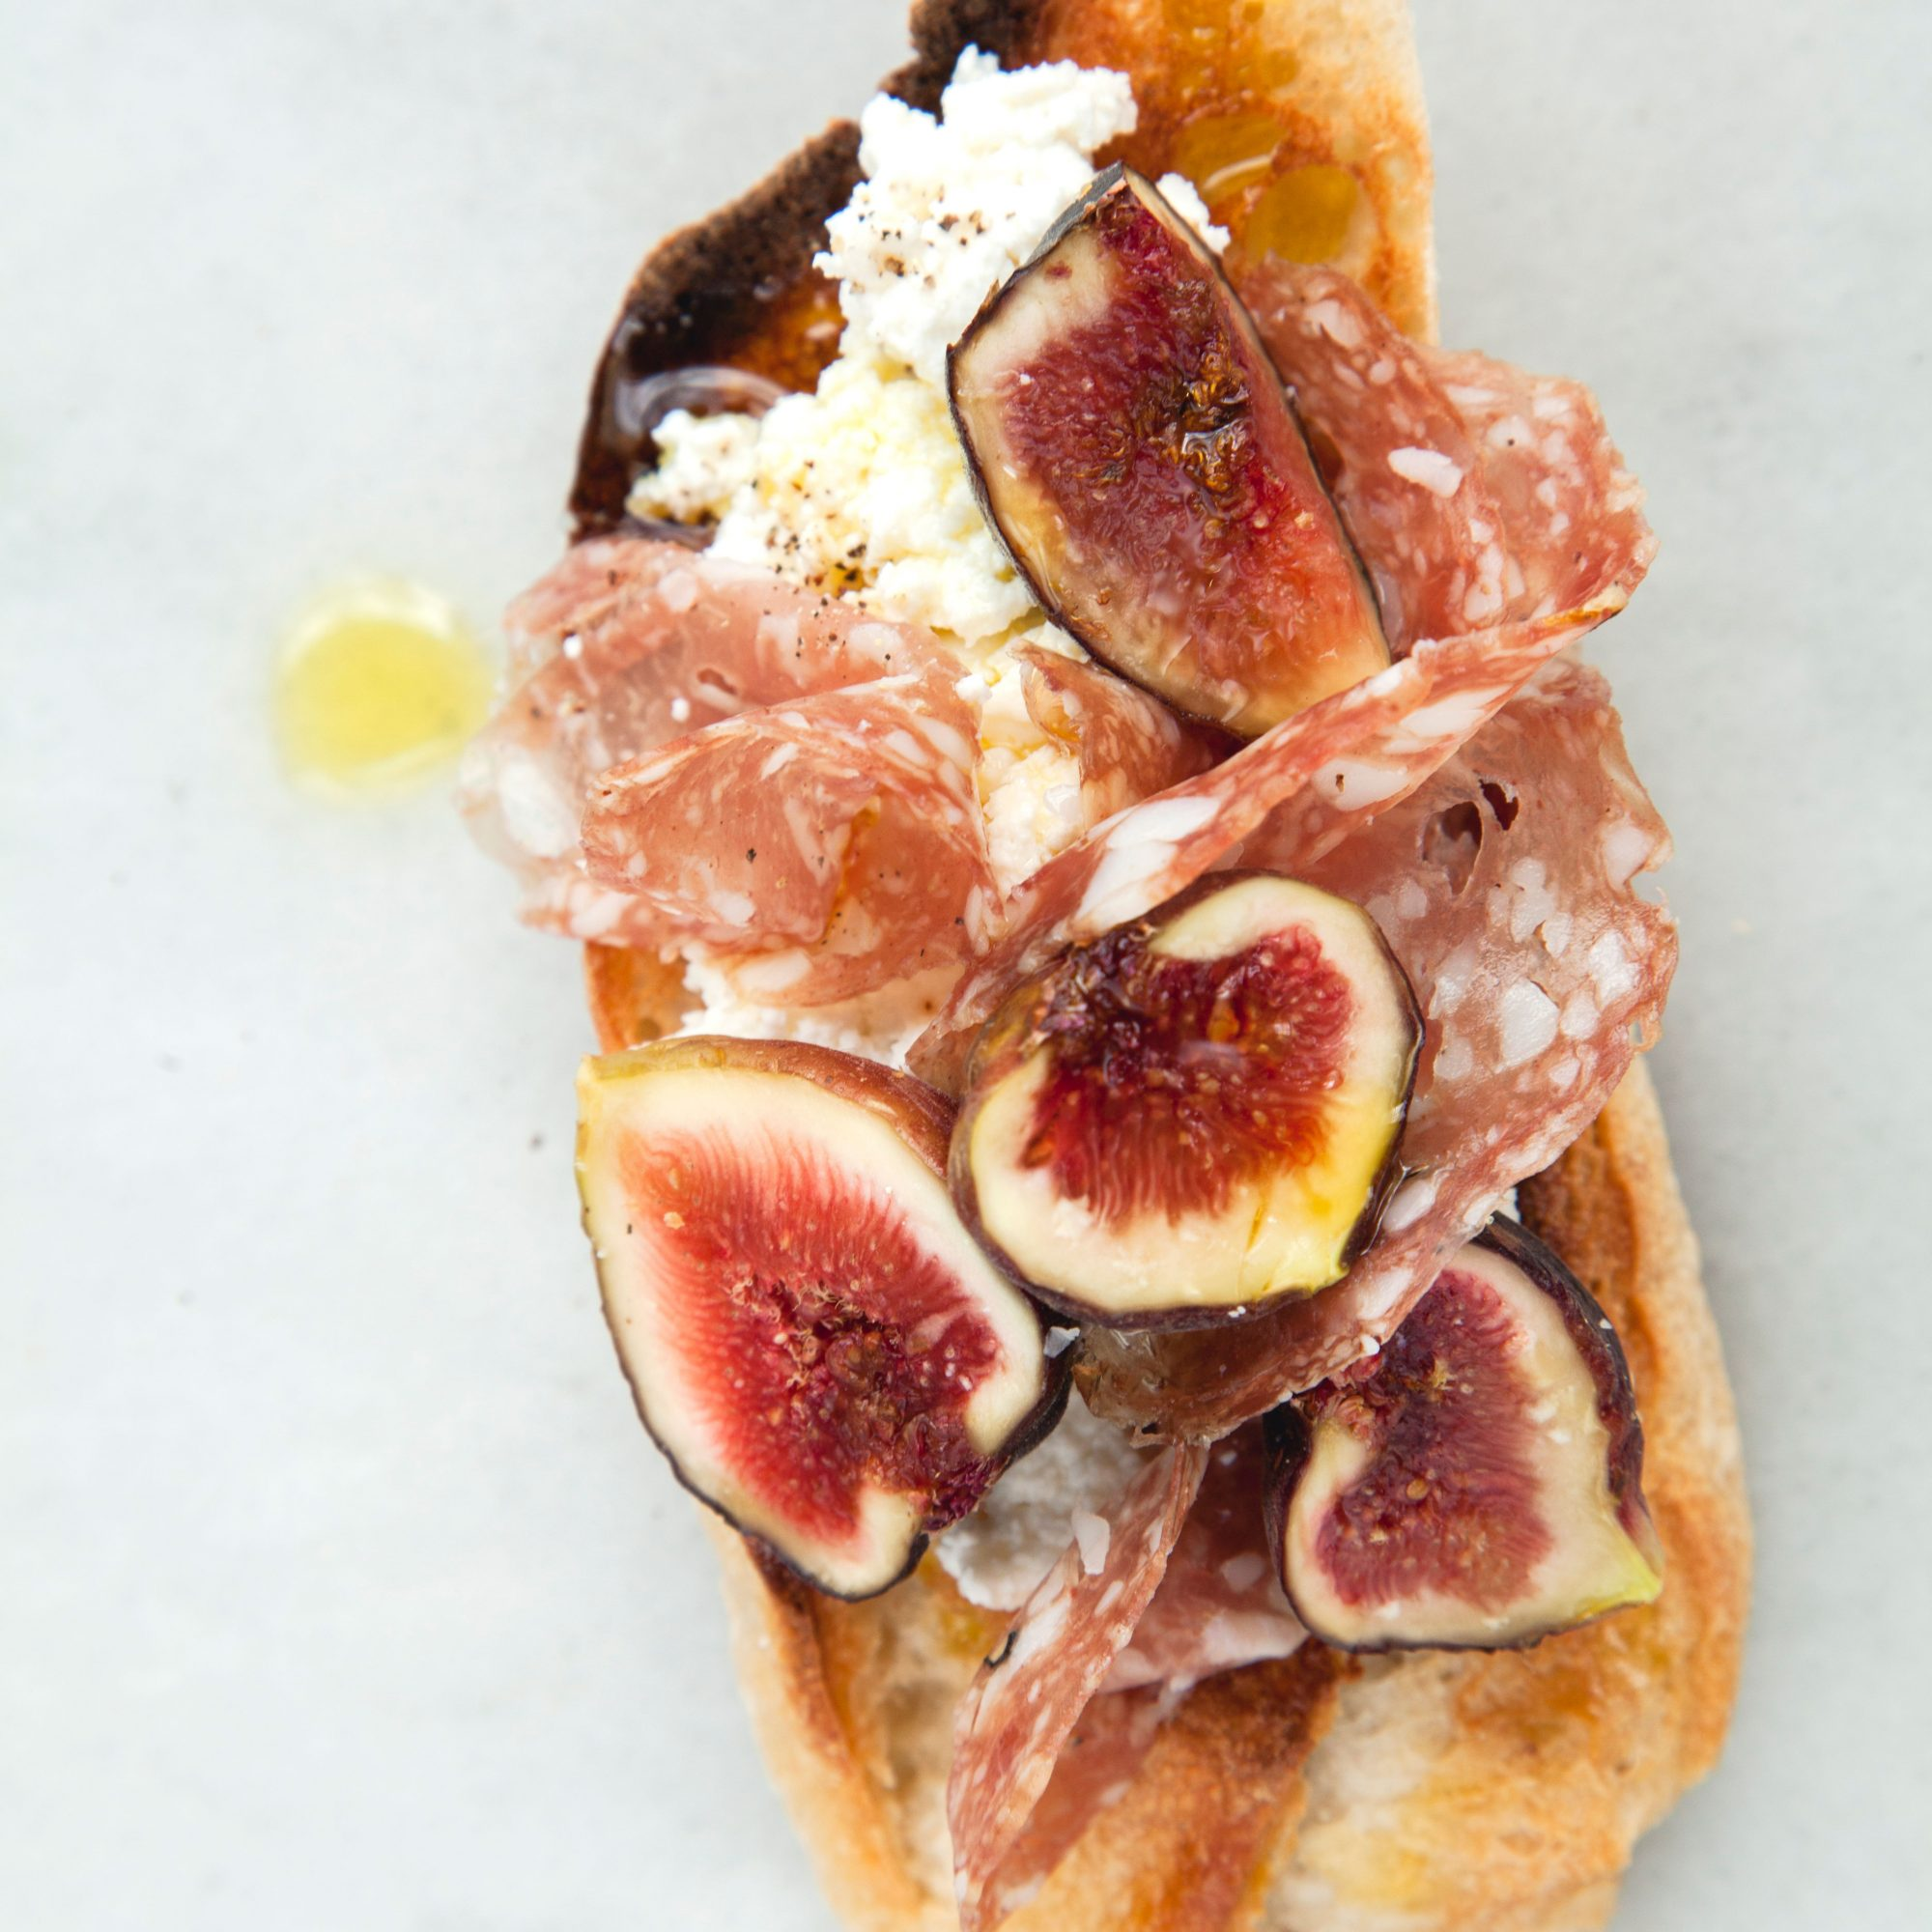 original-201401-r-salami-and-fig-crostini-with-ricotta.jpg